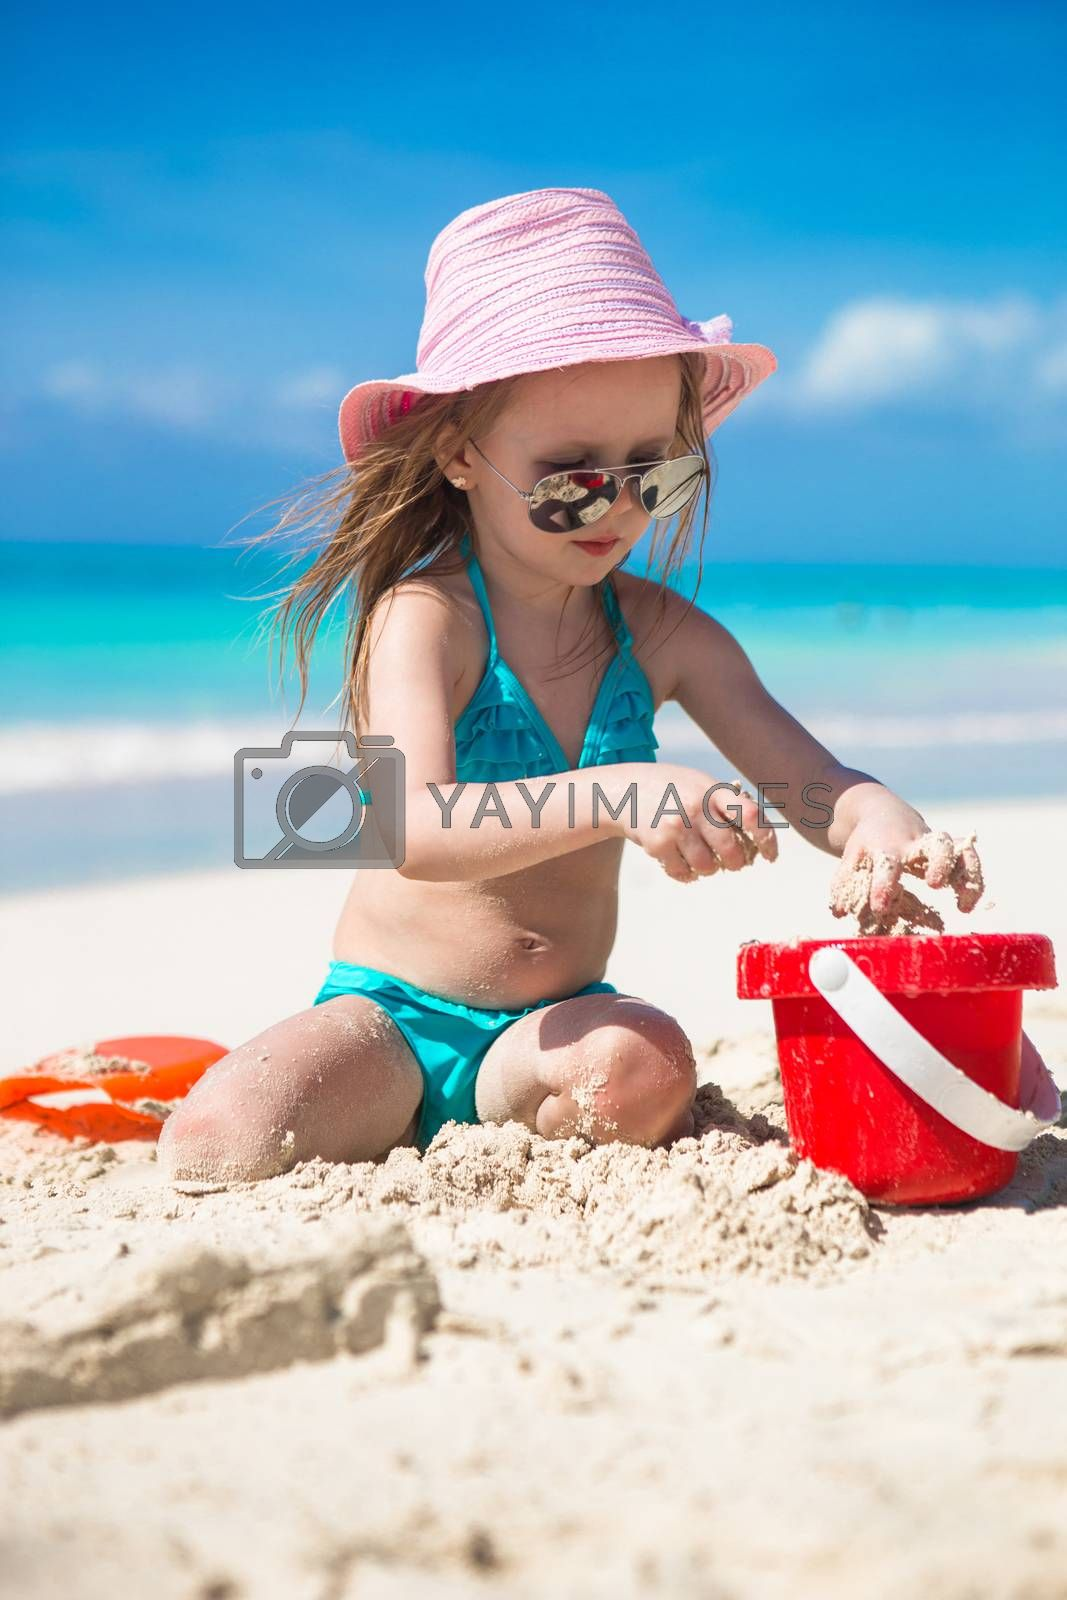 Royalty free image of Adorable little girl playing on the beach with white sand by travnikovstudio